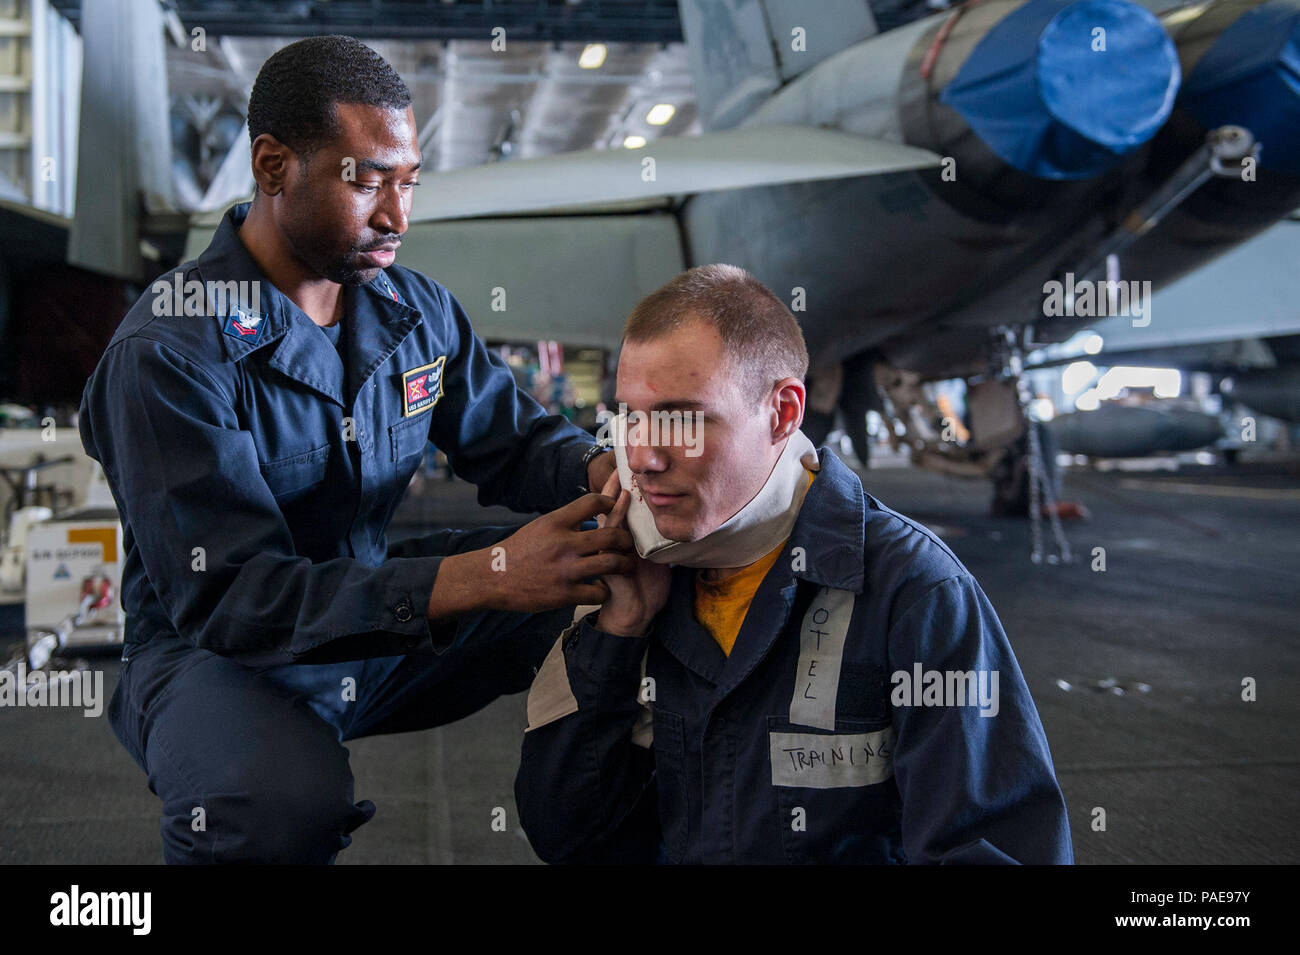 160318-N-GK939-066   ARABIAN GULF (March 18, 2016) Hospital Corpsman 2nd Class Richard Williams, left, applies pressure to a wound on a simulated casualty during a mass casualty drill in the hangar bay of aircraft carrier USS Harry S. Truman (CVN 75). Harry S. Truman Carrier Strike Group is deployed in support of Operation Inherent Resolve, maritime security operations, and theater security cooperation efforts in the U.S. 5th Fleet area of operations. (U.S. Navy photo by Mass Communication Specialist Seaman Lindsay A. Preston/Released) - Stock Image